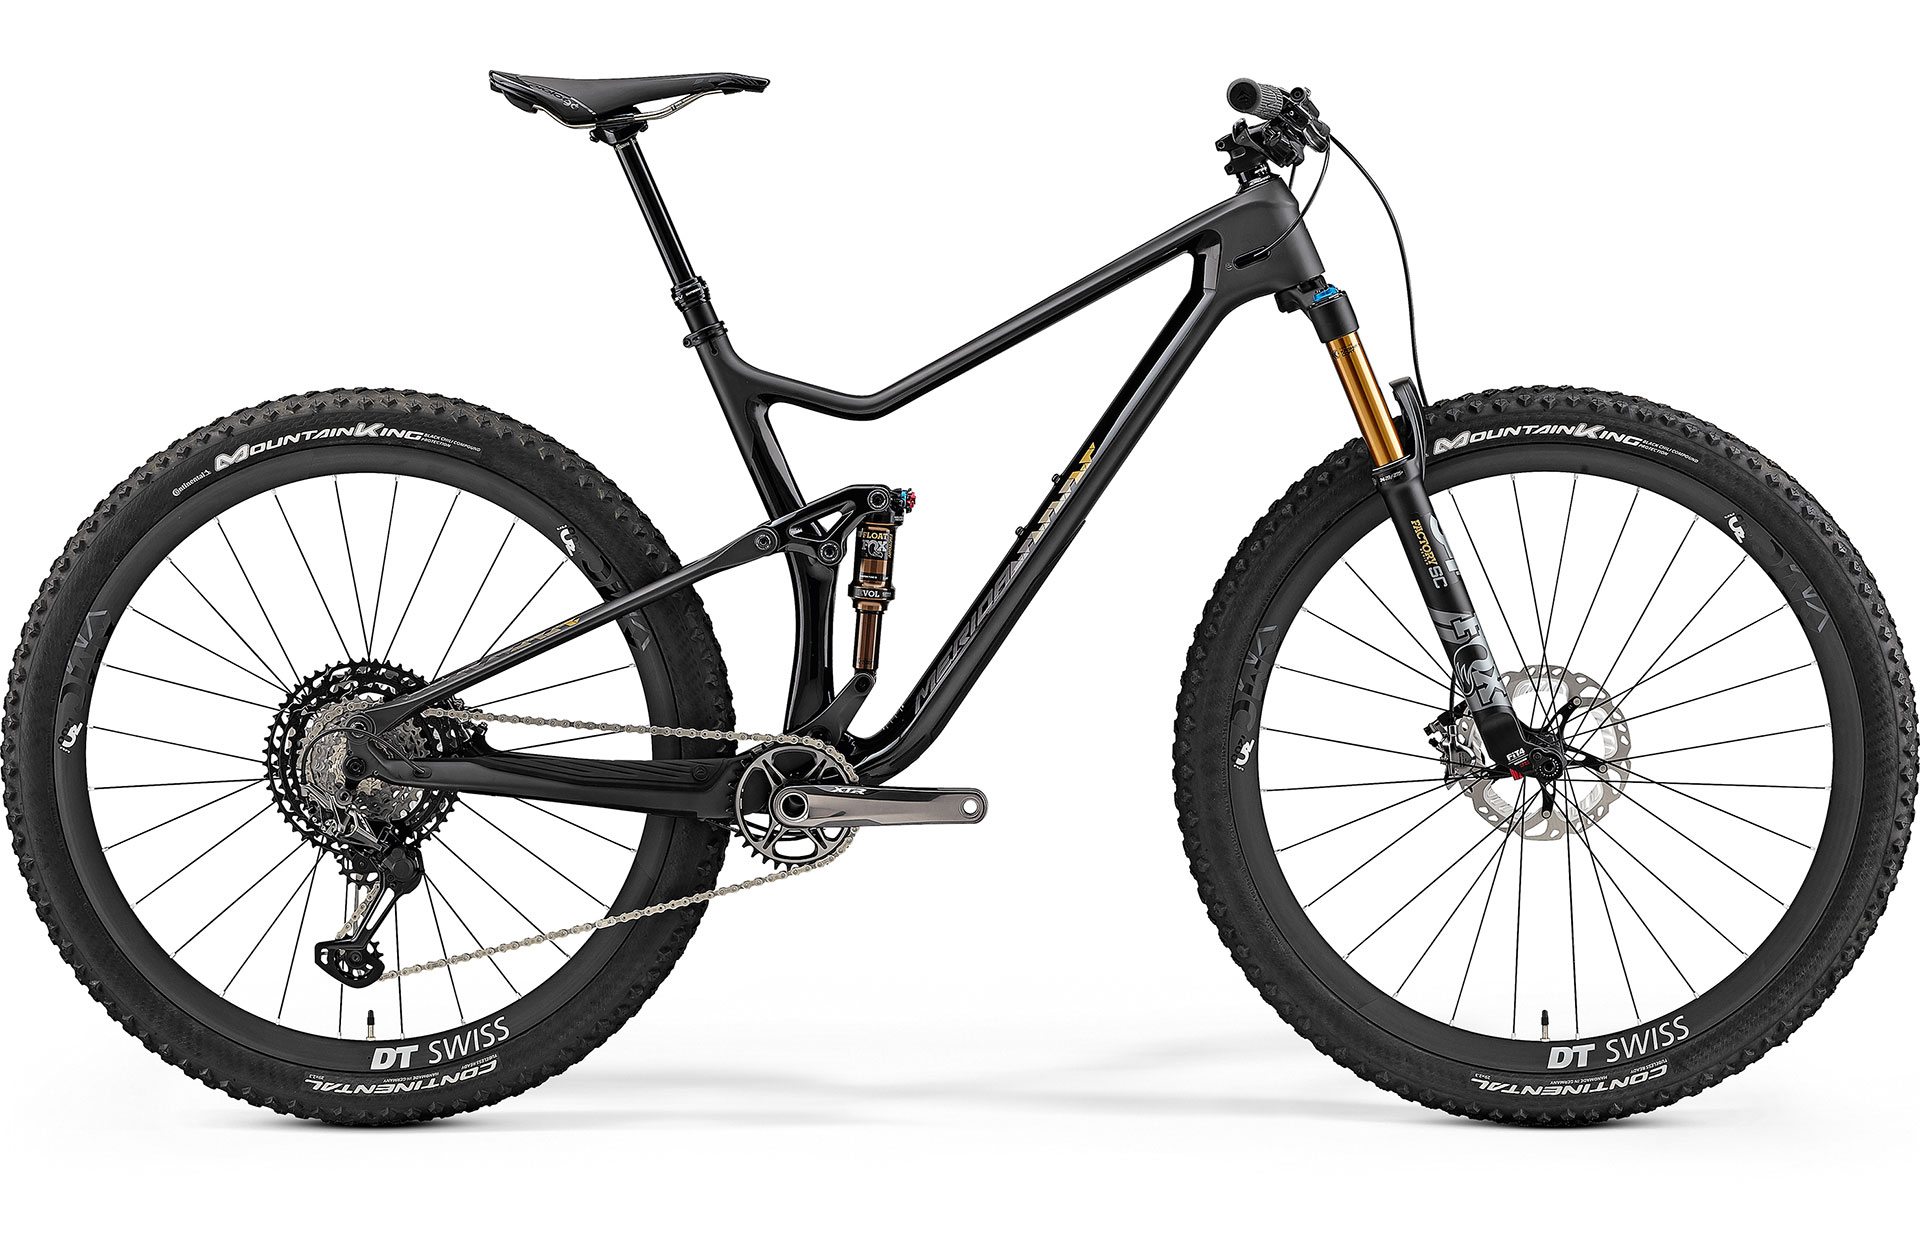 Bicicleta trail doble suspensión ONE-TWENTY Carbon